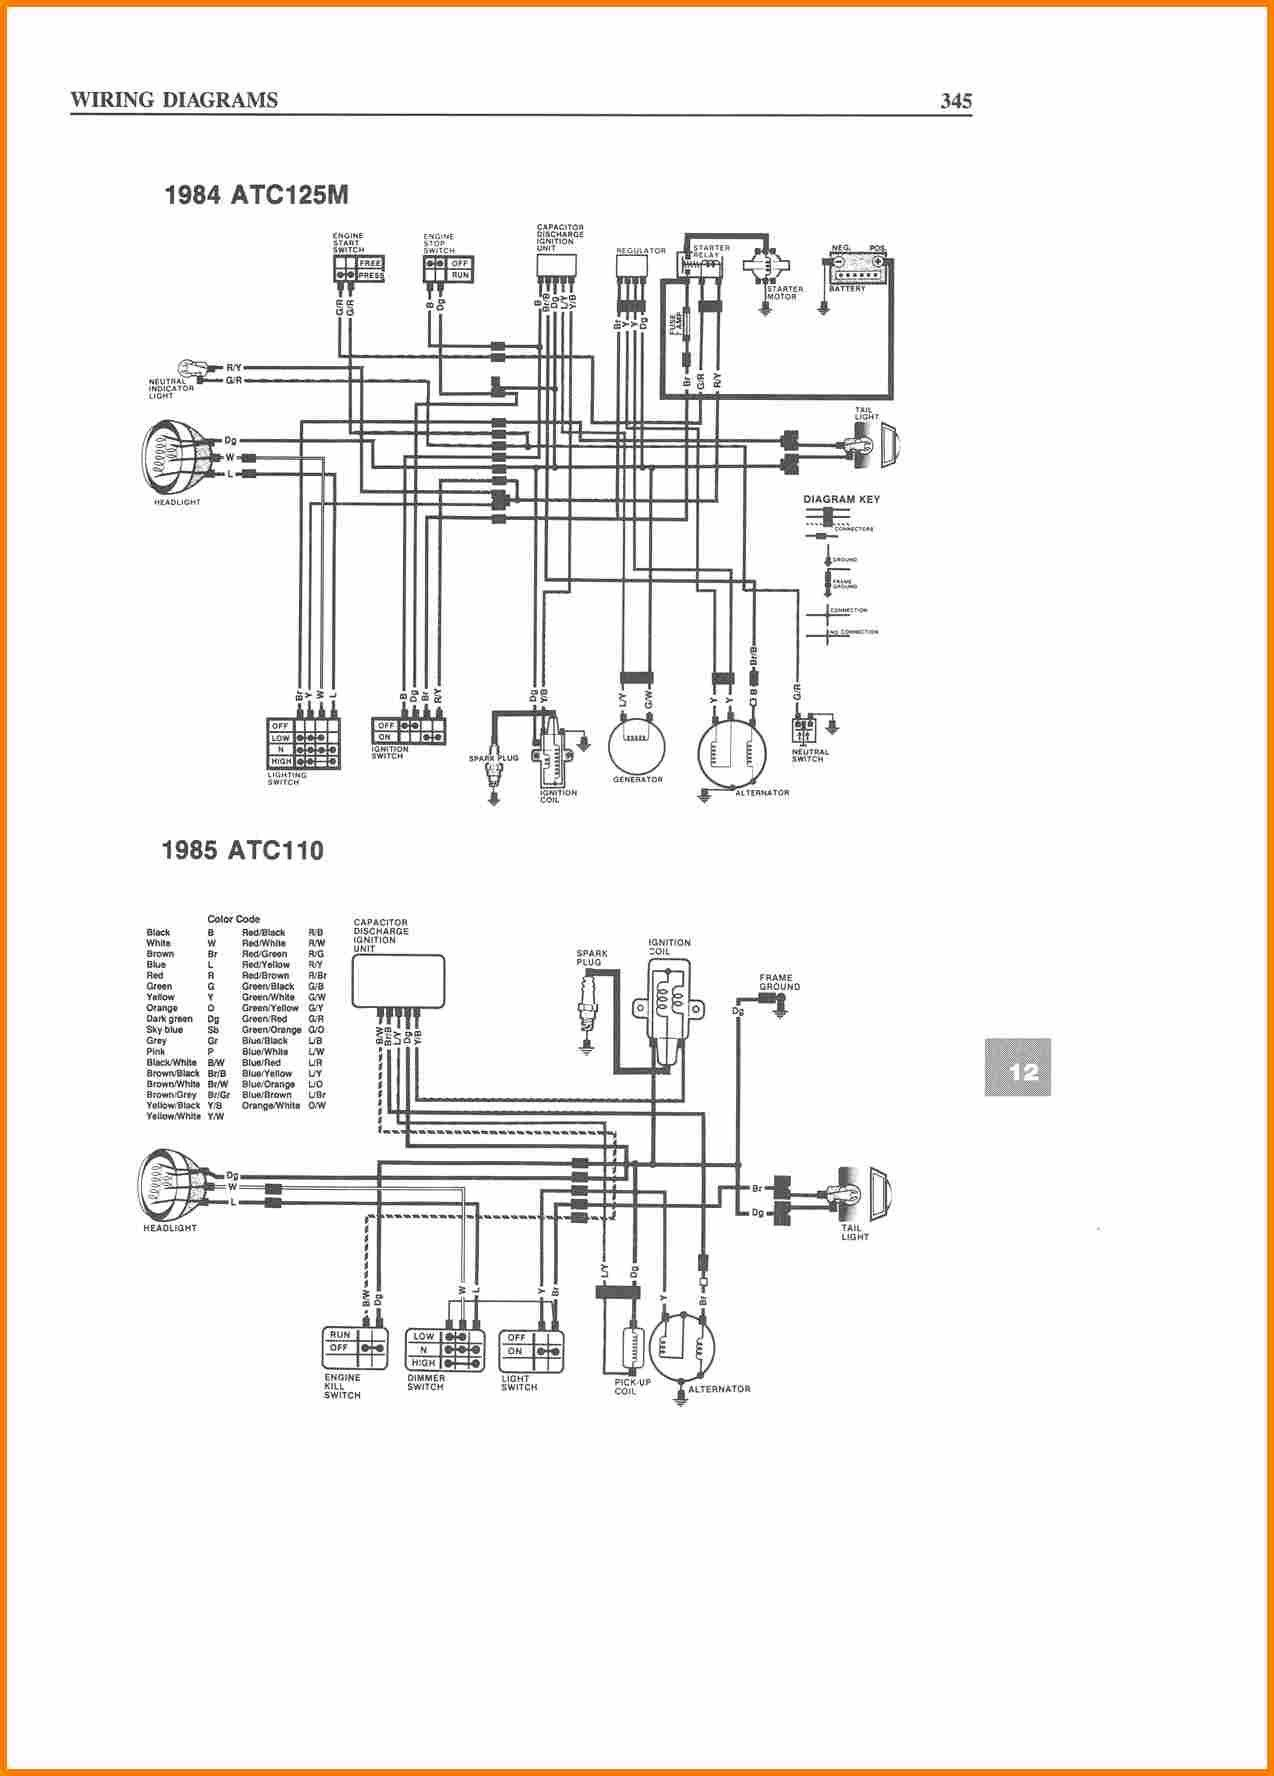 kazuma 50 atv wiring diagram cobra 50 atv wiring diagram aeon atv wiring schematics | wiring diagram